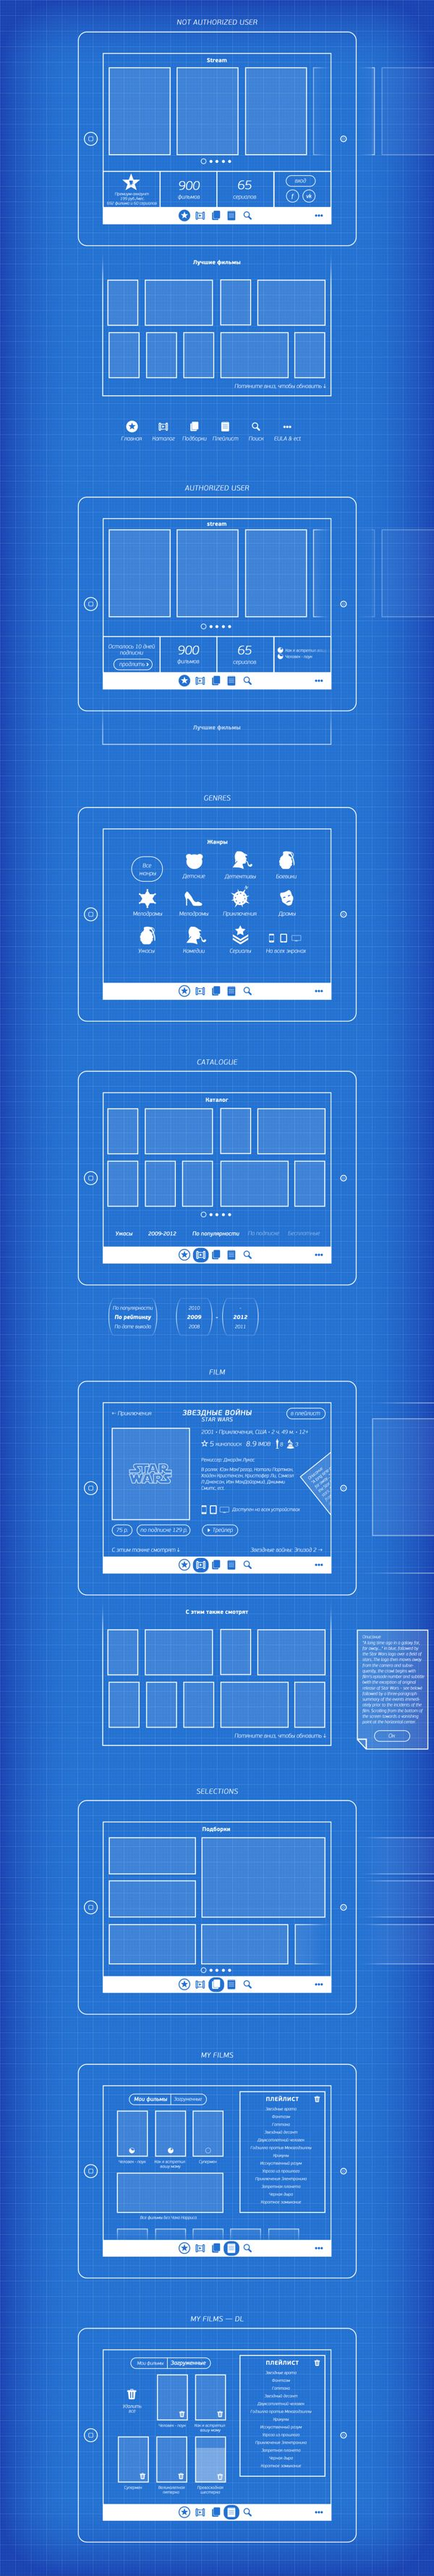 Movies app wireframe by Vladimir Vorobyev, via Behance *** Wireframes for redesign of our app of films online.